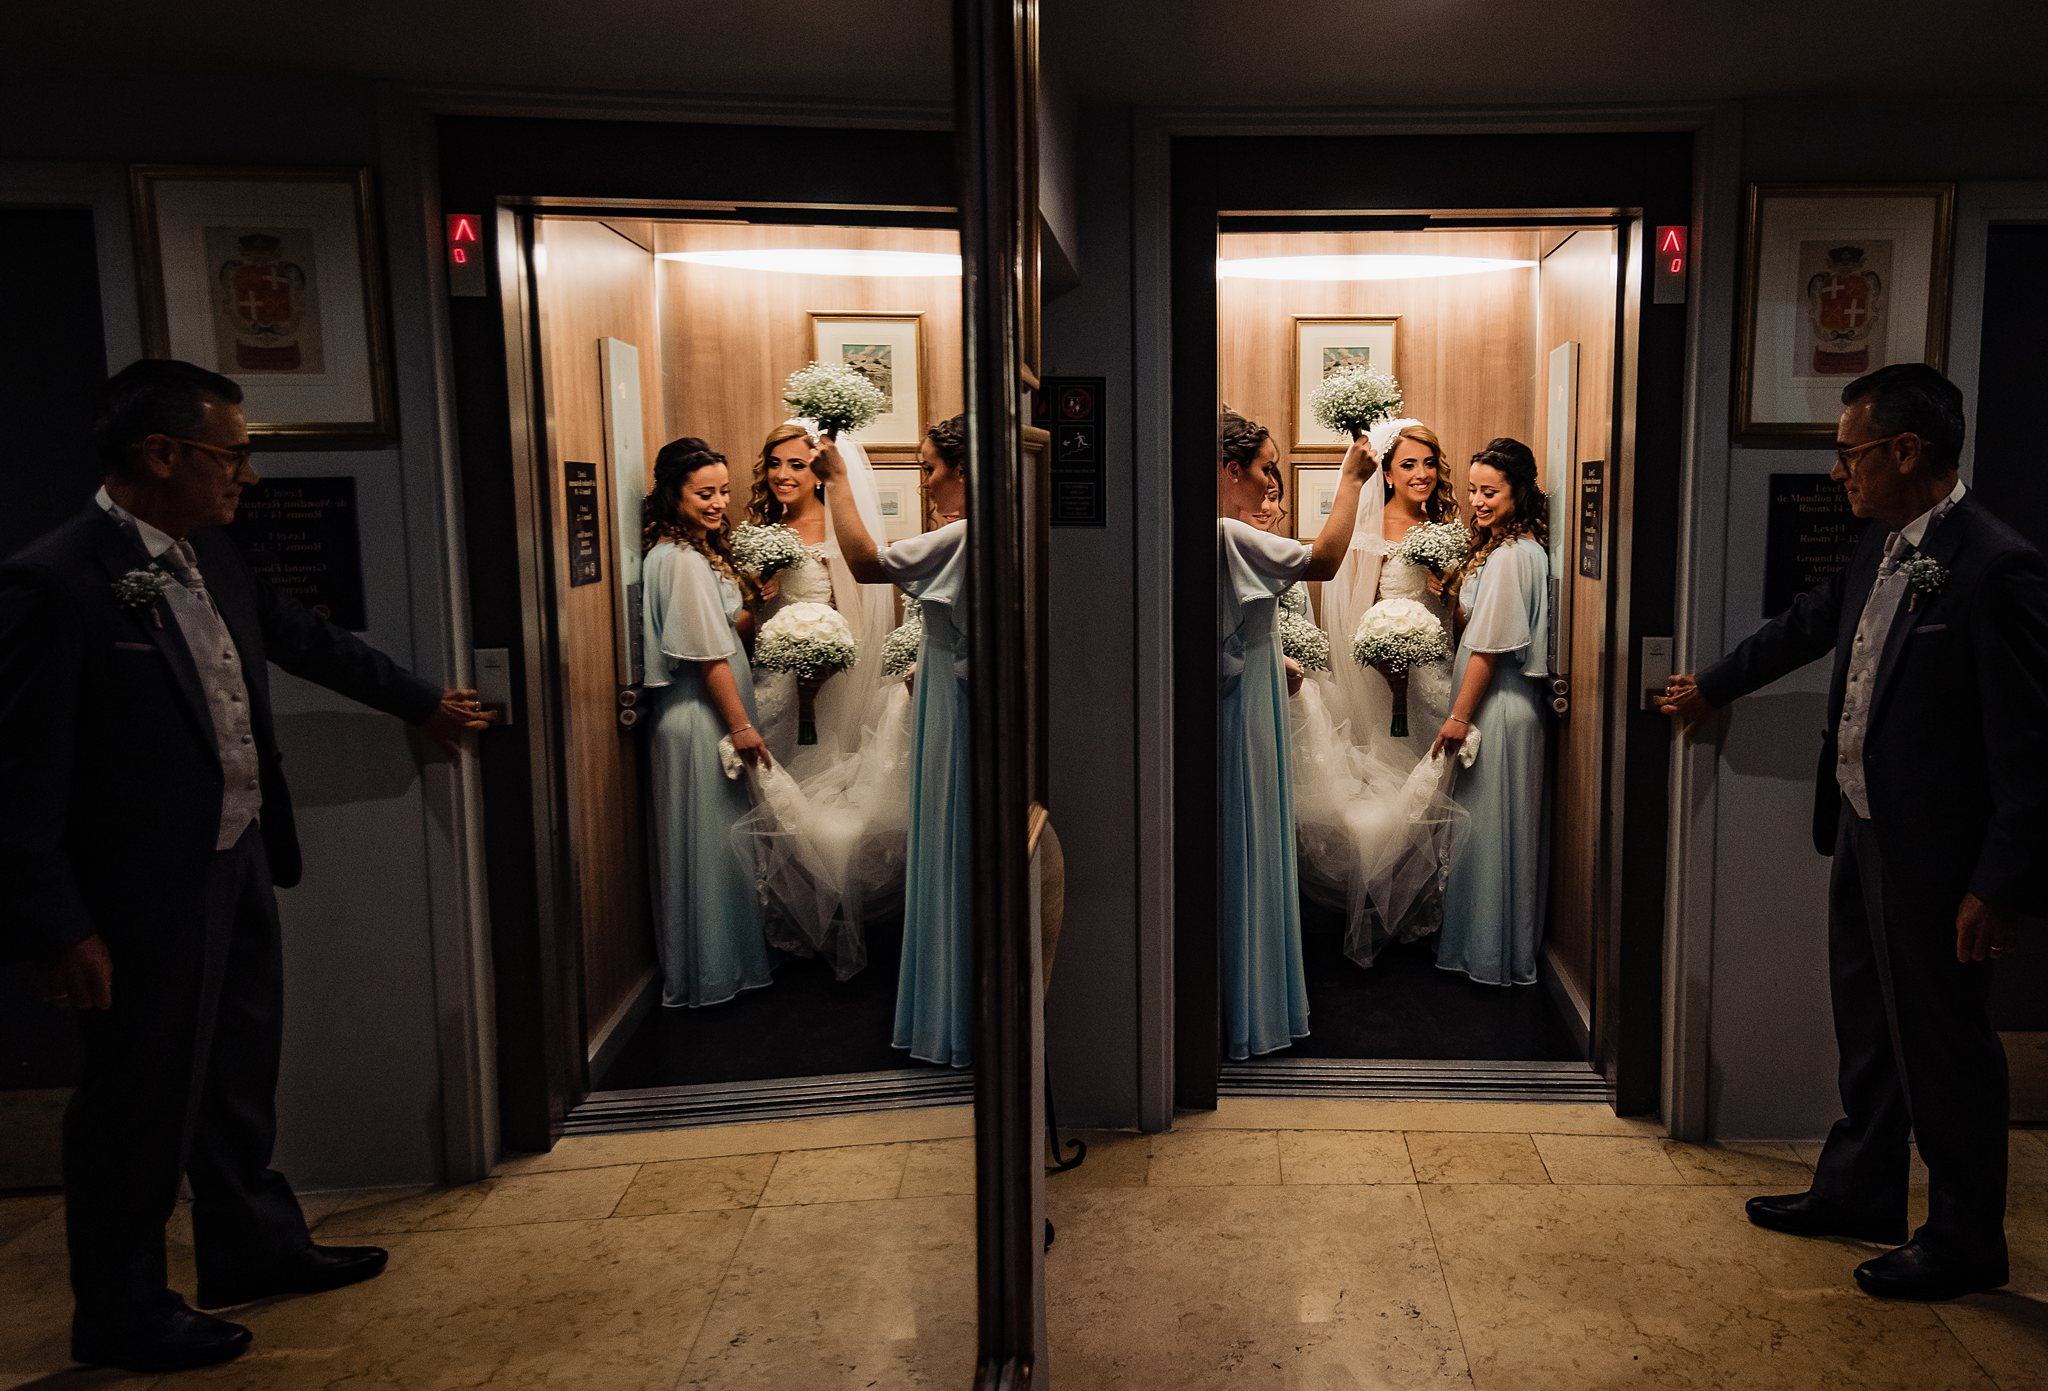 Double exposure of bride and bridesmaid in elevator - photo by Shane P. Watts Photography